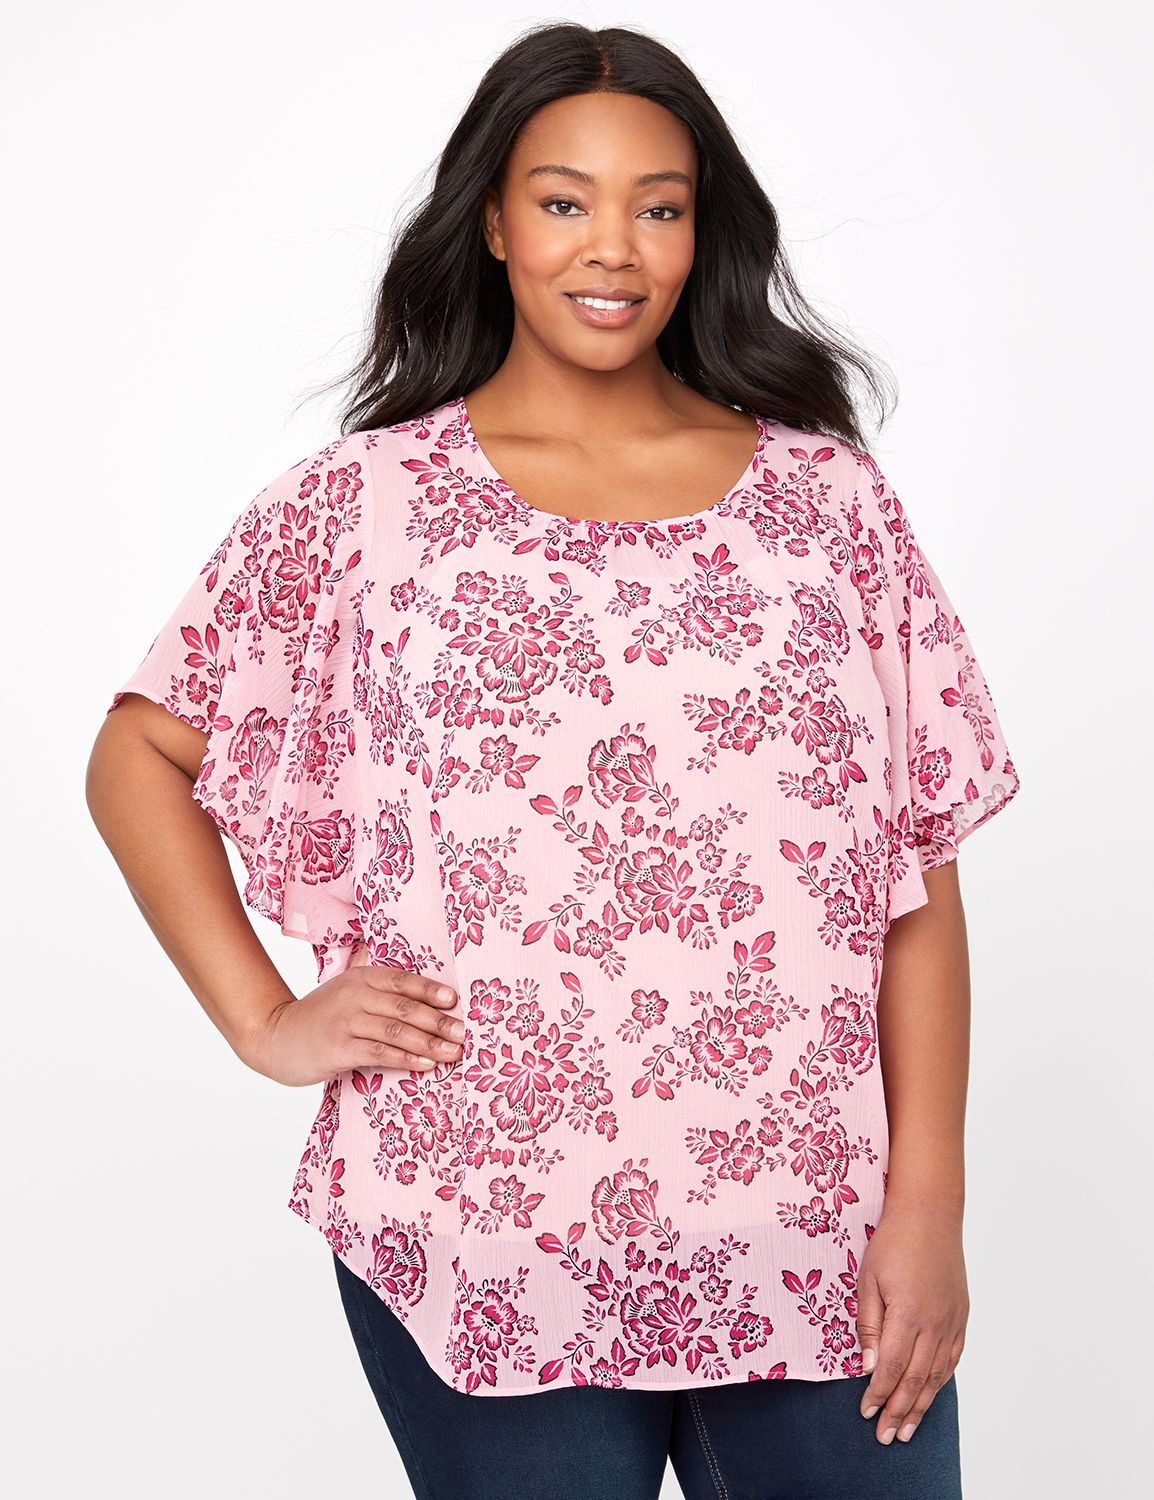 Radiant Orchid Blouse...